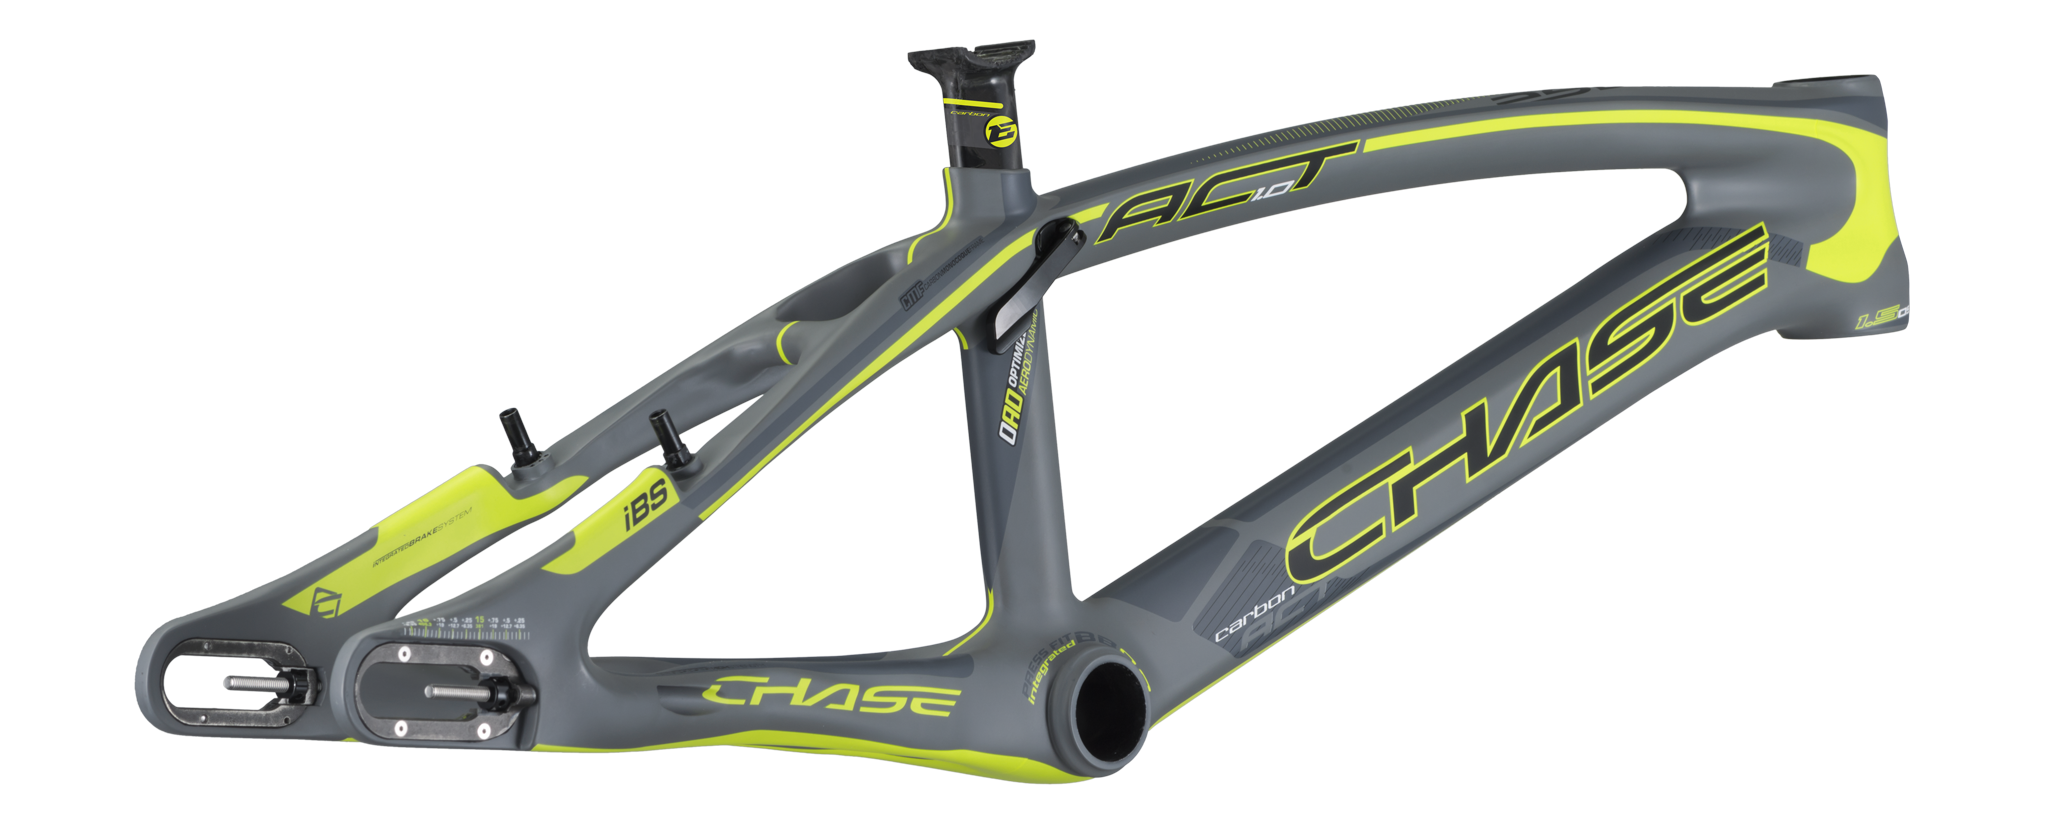 we are excited to show you the future of chase bmx and bmx racing the chase act 10 carbon frame